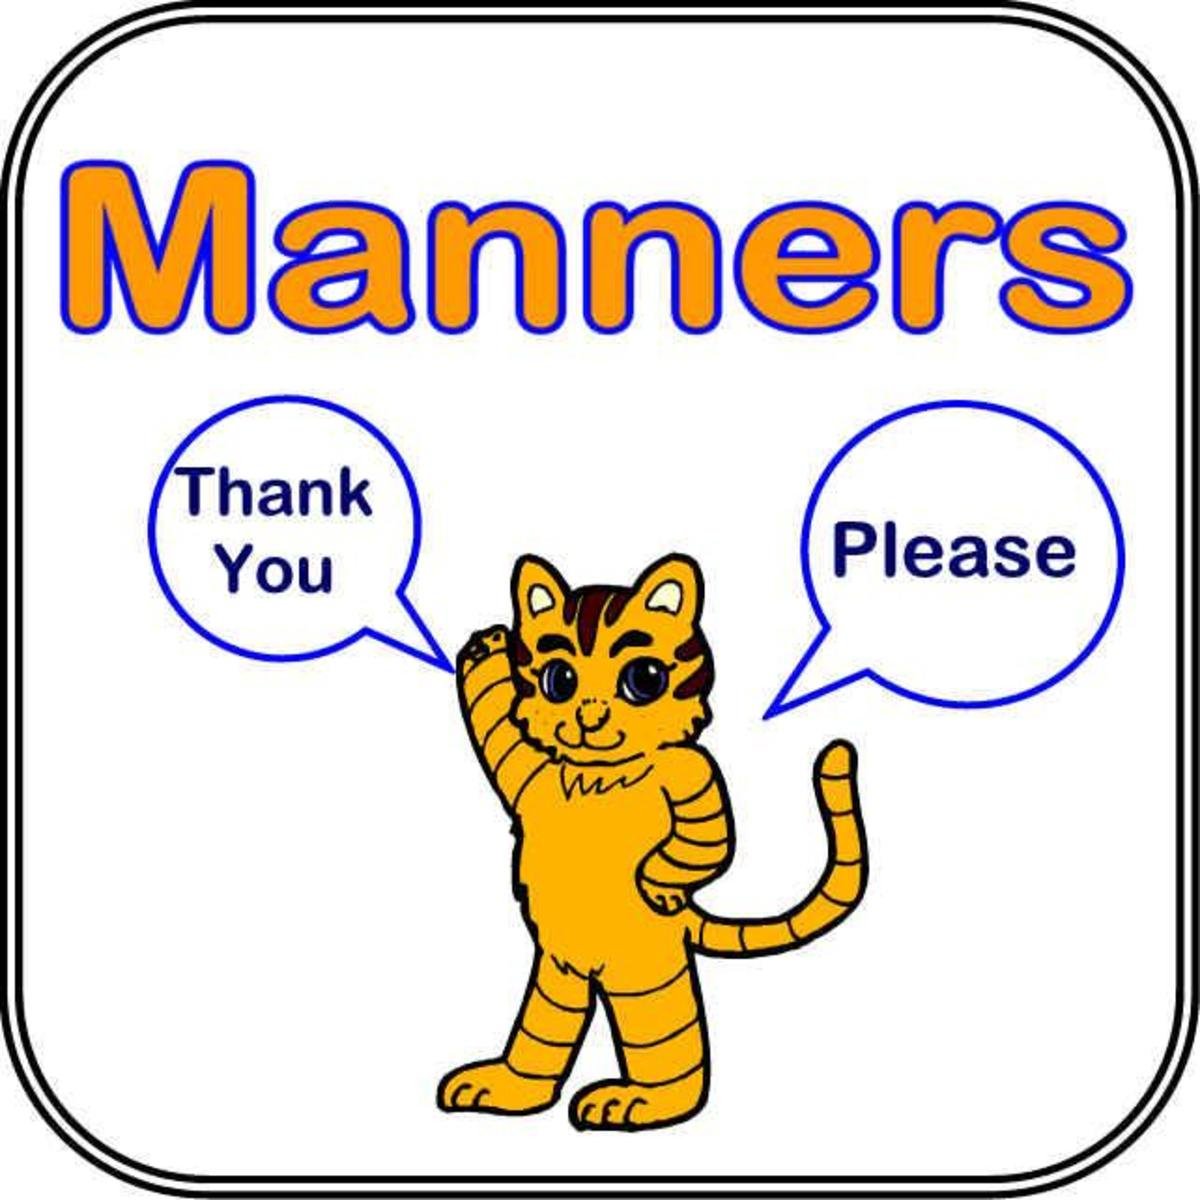 Manners make the world go 'round.